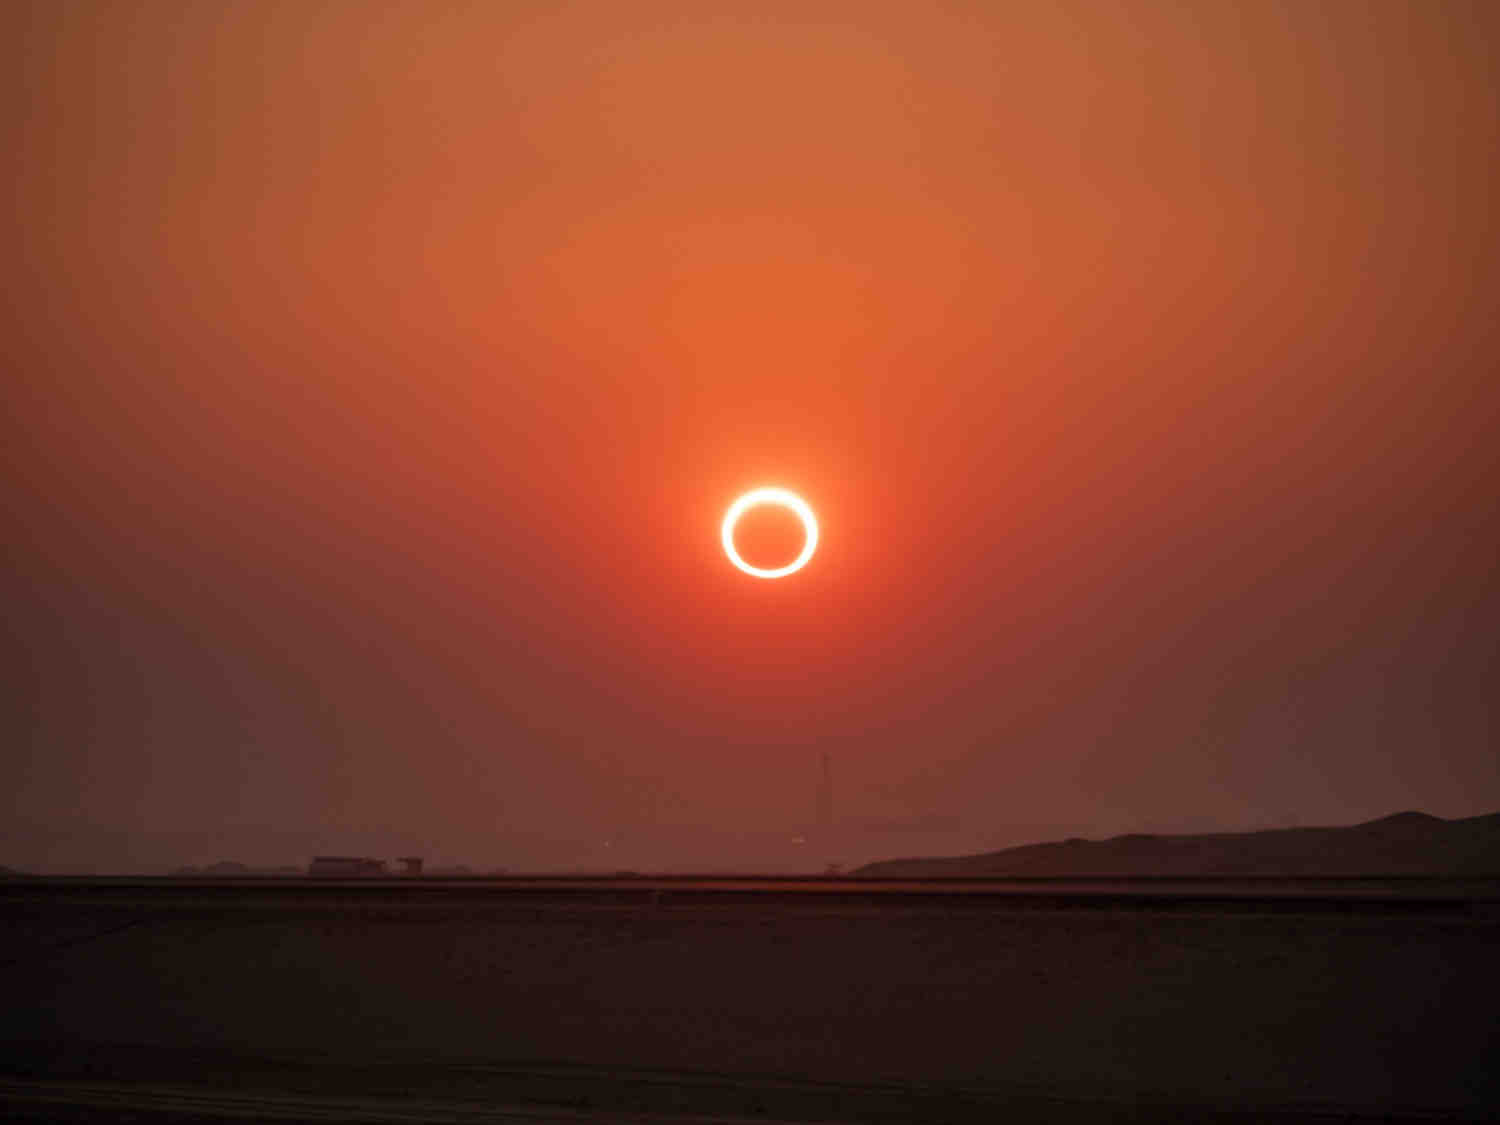 What time is the eclipse tonight in San Diego?